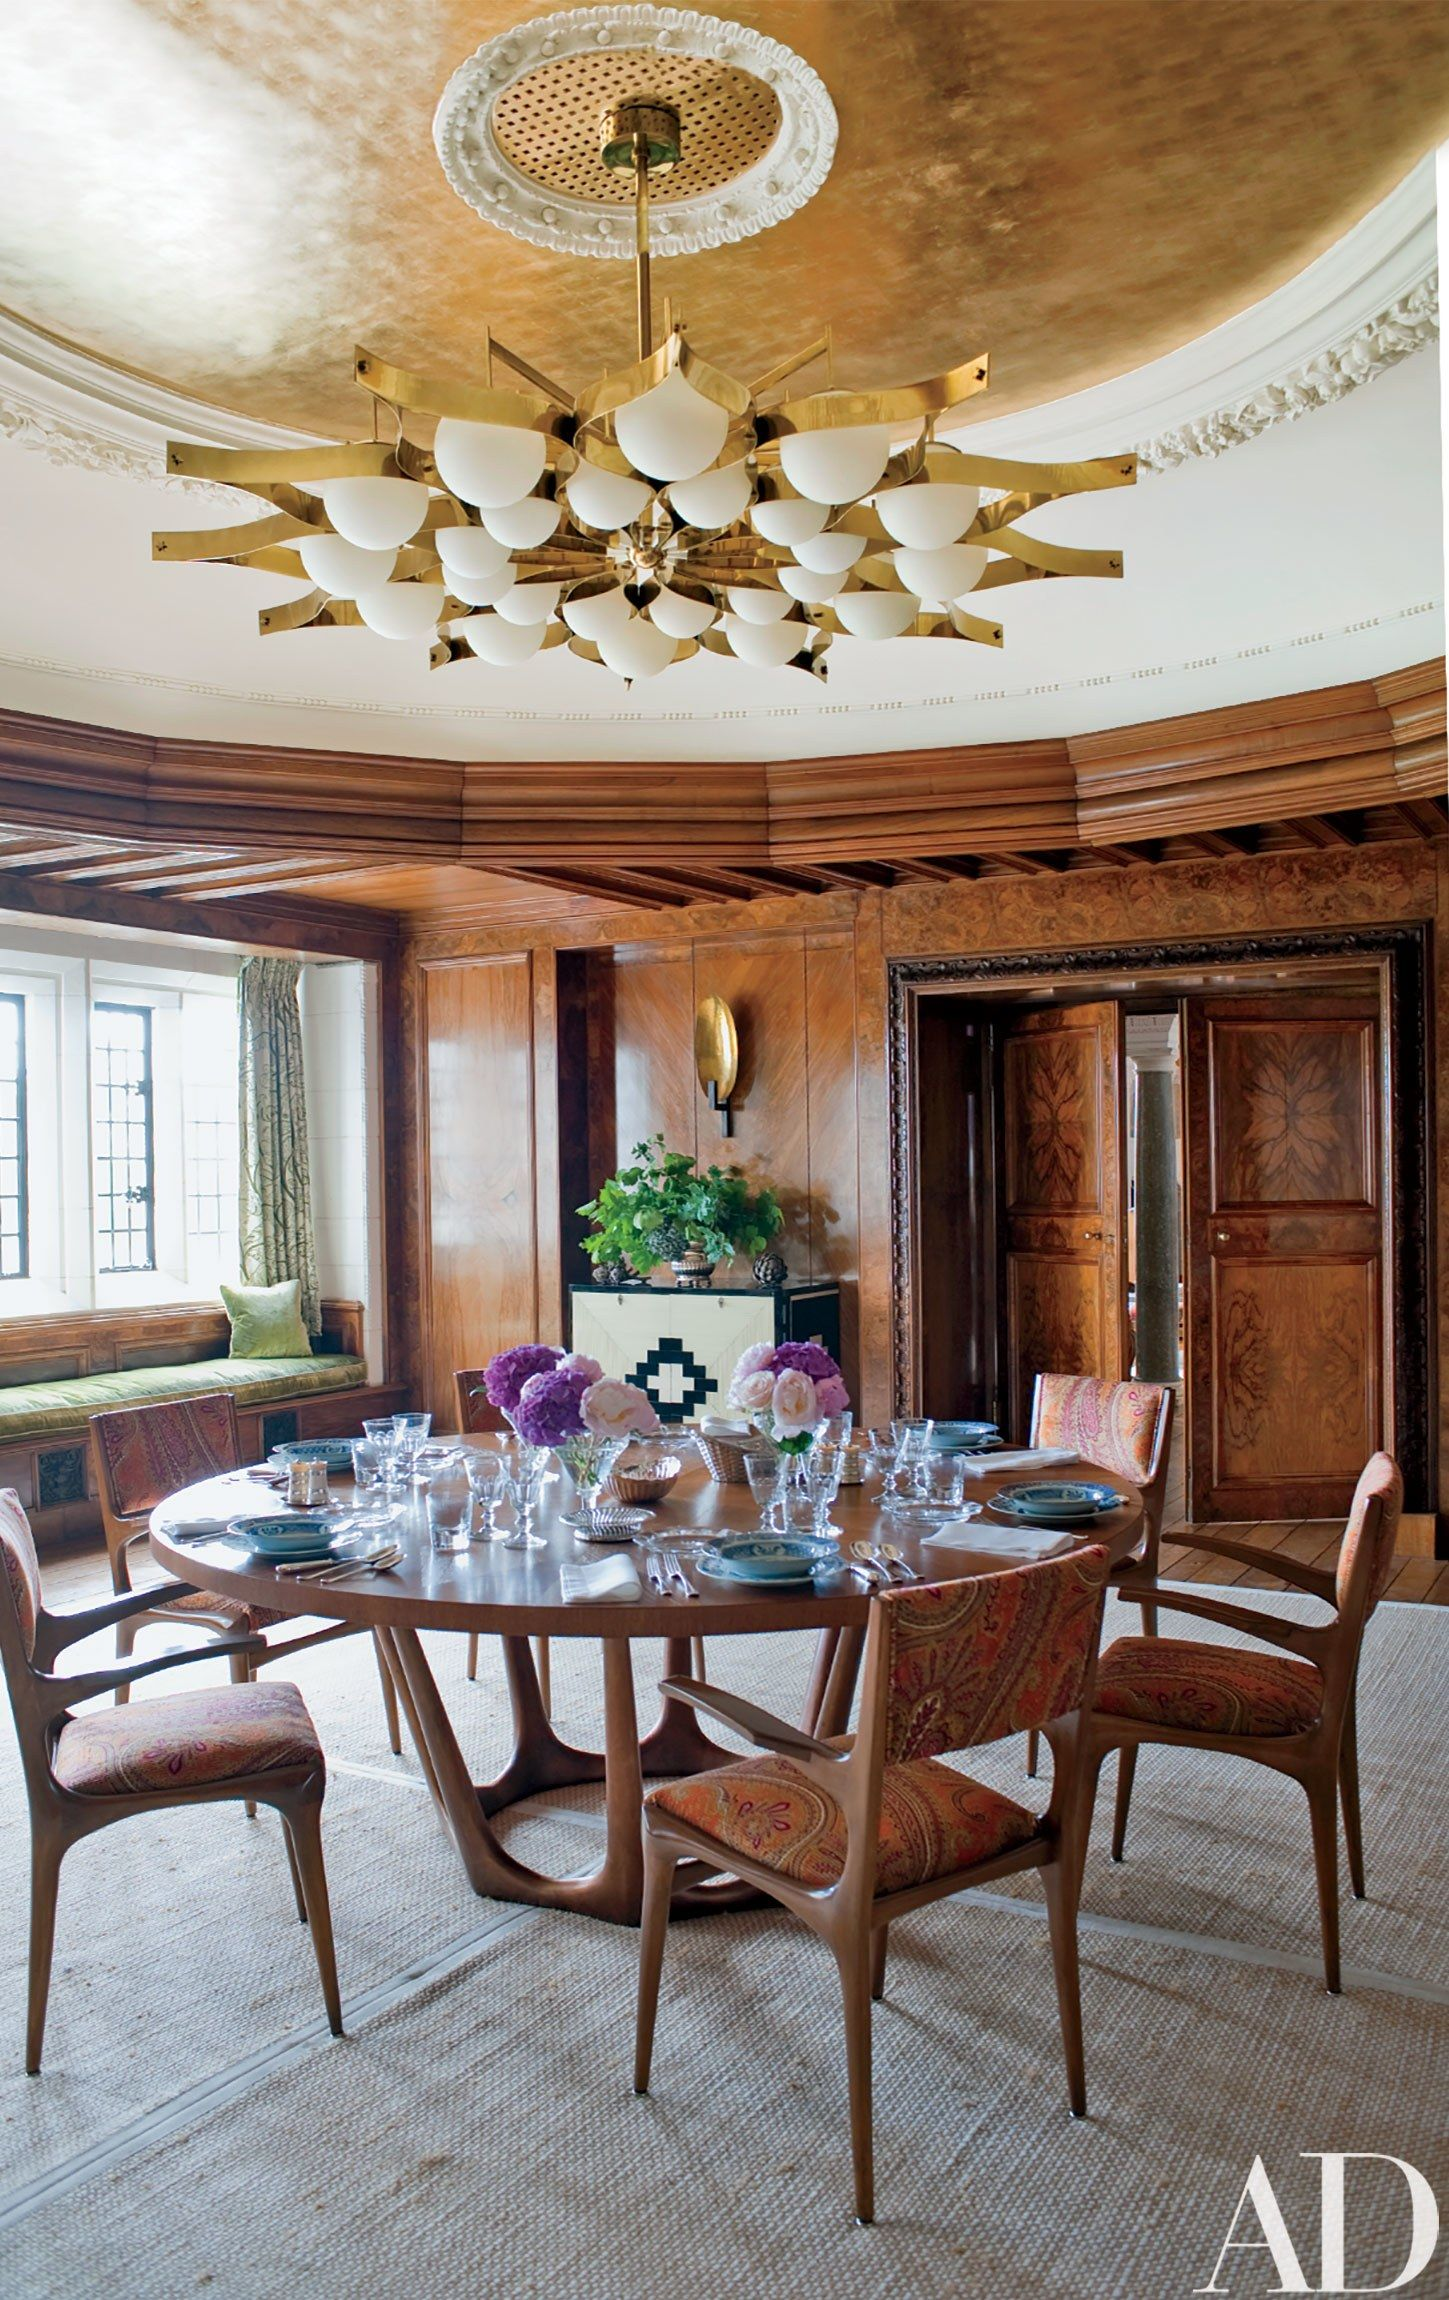 Look Inside An English Country Home That Elegantly Blends Tudor And Jacobean Features Englische Landhauser Esszimmerdekoration Dekor